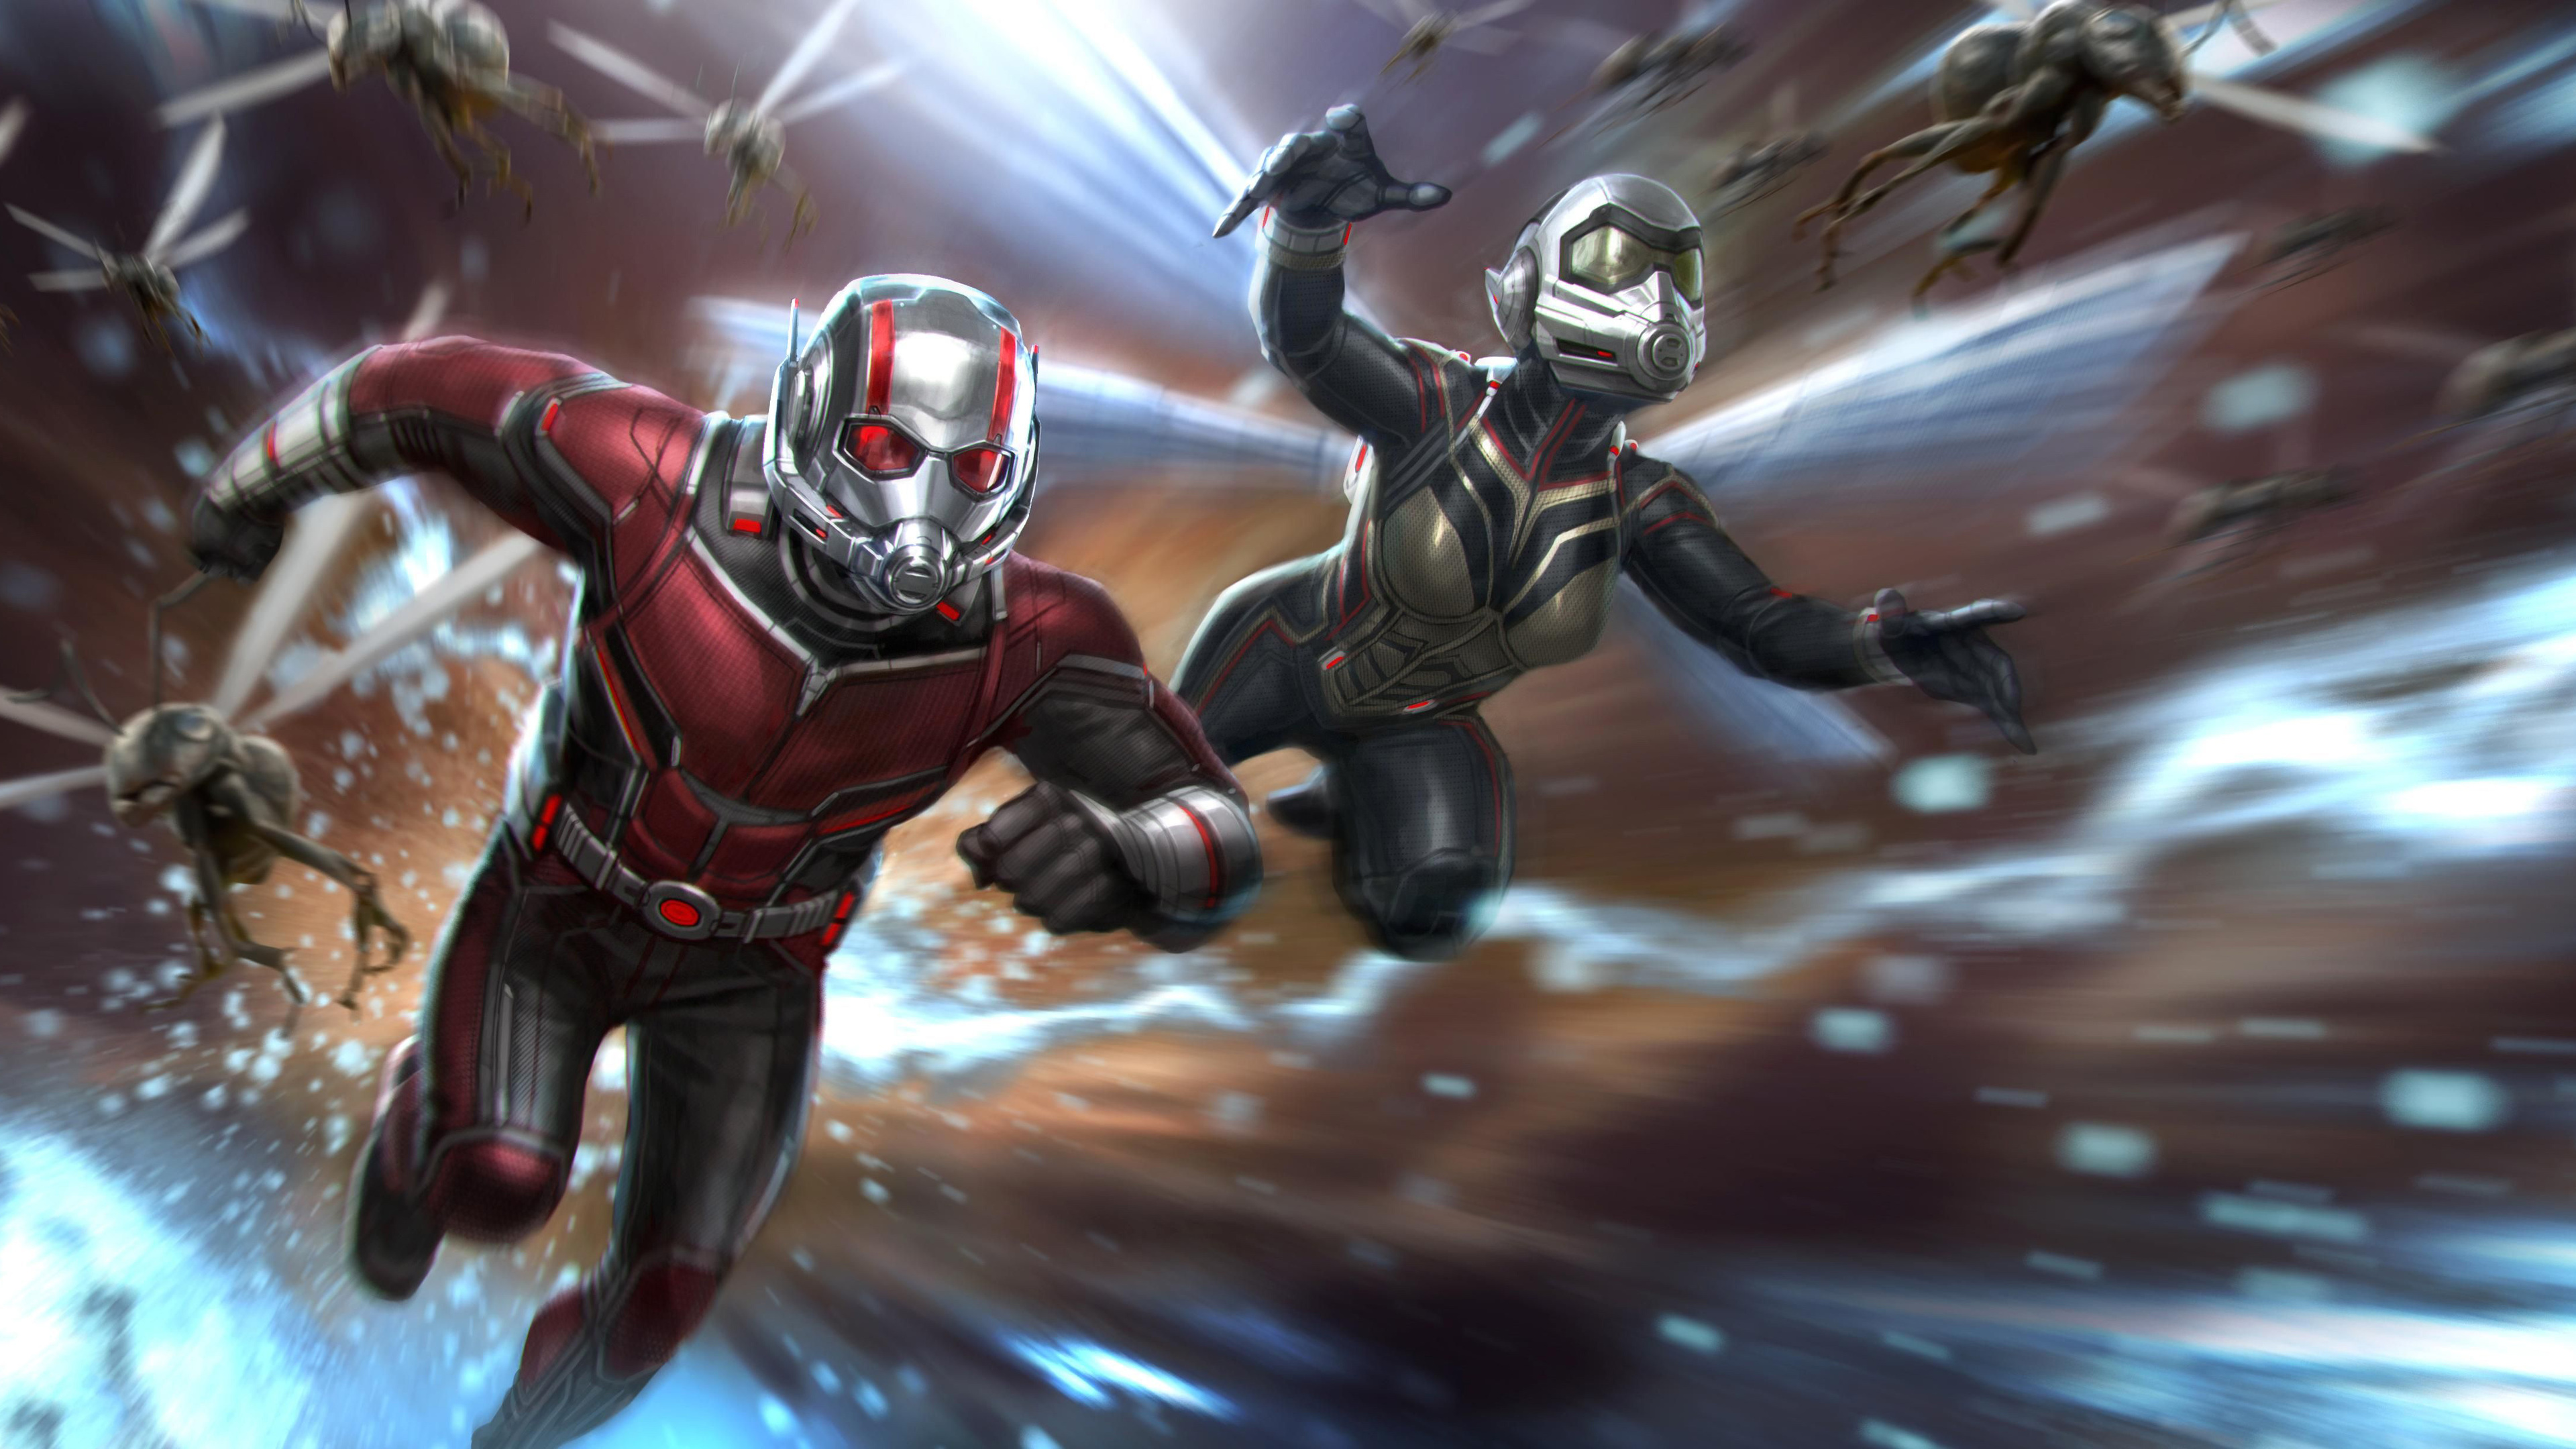 ant man and the wasp movie concept art 1537645054 - Ant Man And The Wasp Movie Concept Art - wasp wallpapers, movies wallpapers, hd-wallpapers, ant man wallpapers, ant man and the wasp wallpapers, 5k wallpapers, 4k-wallpapers, 2018-movies-wallpapers